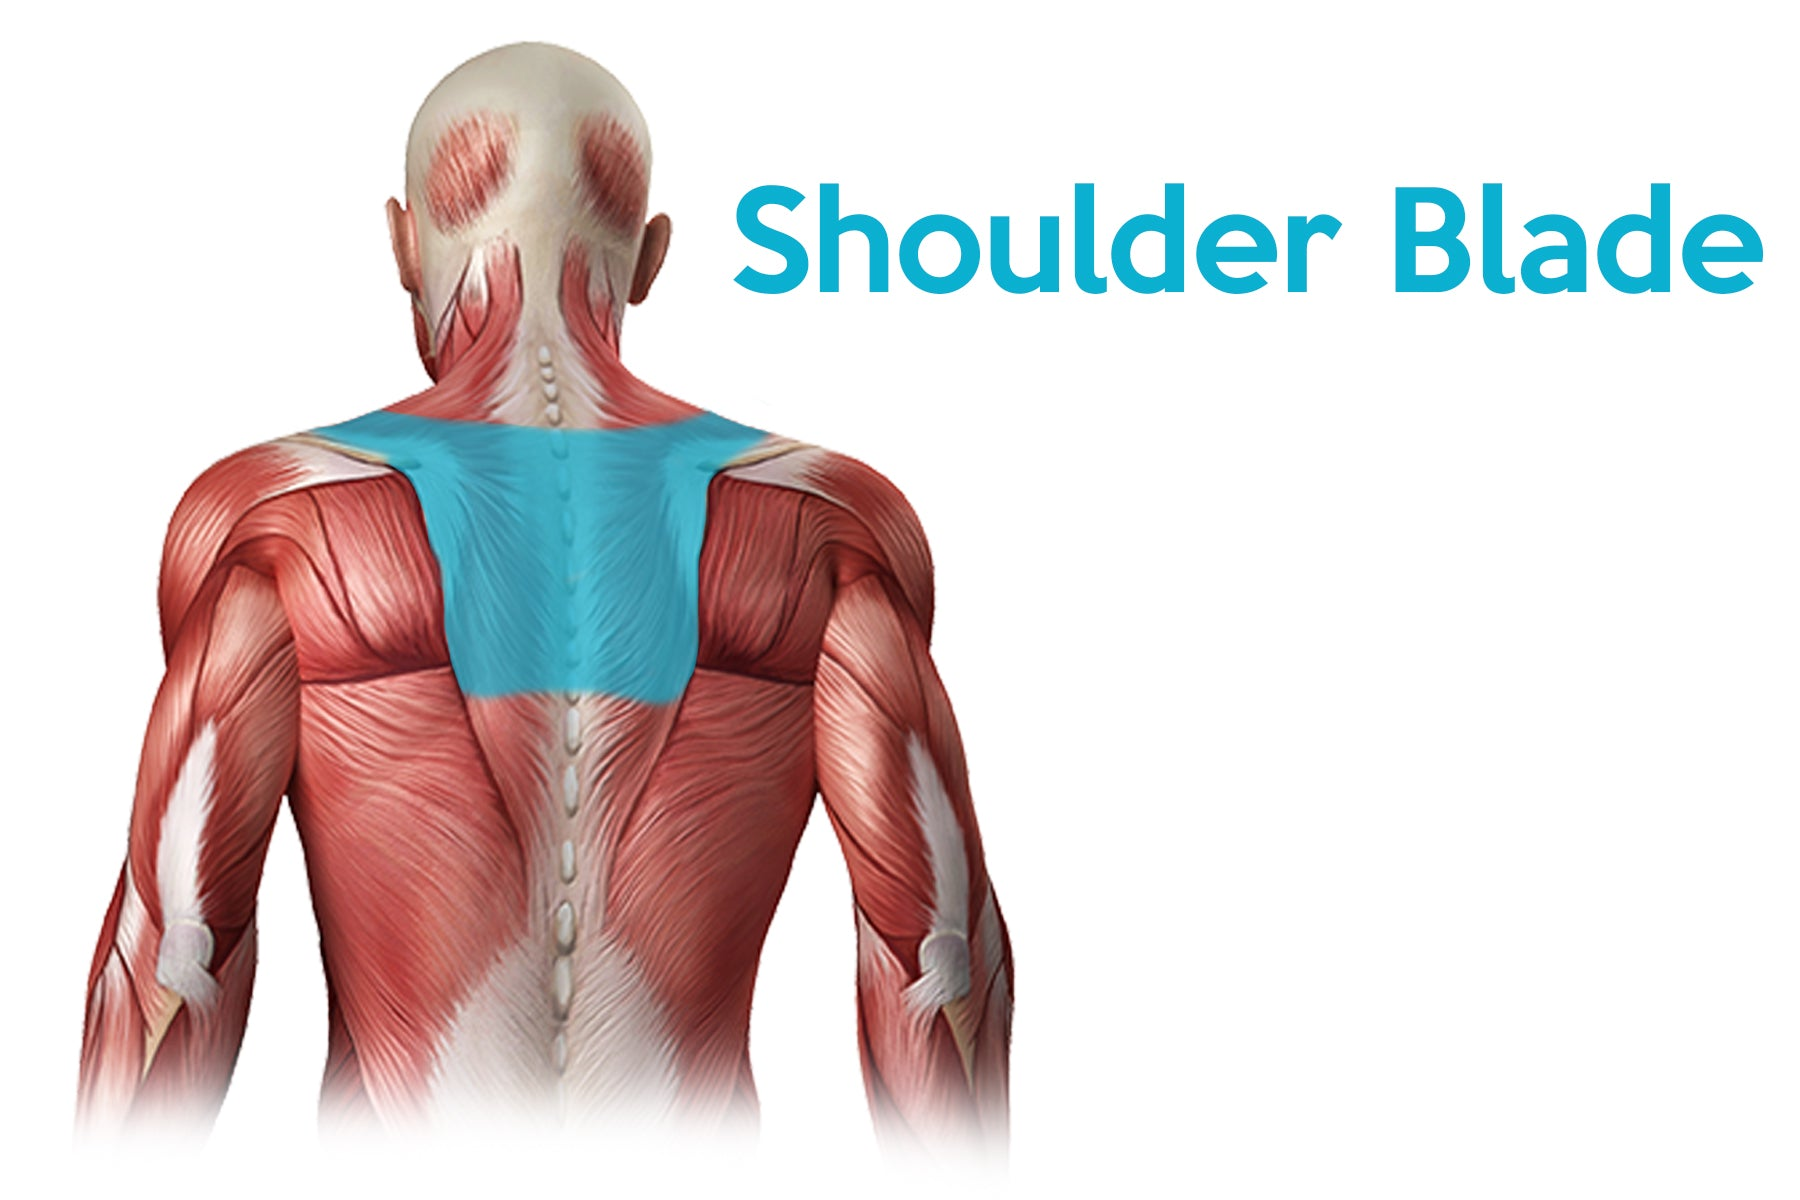 learn more about upper back and shoulder blade pain